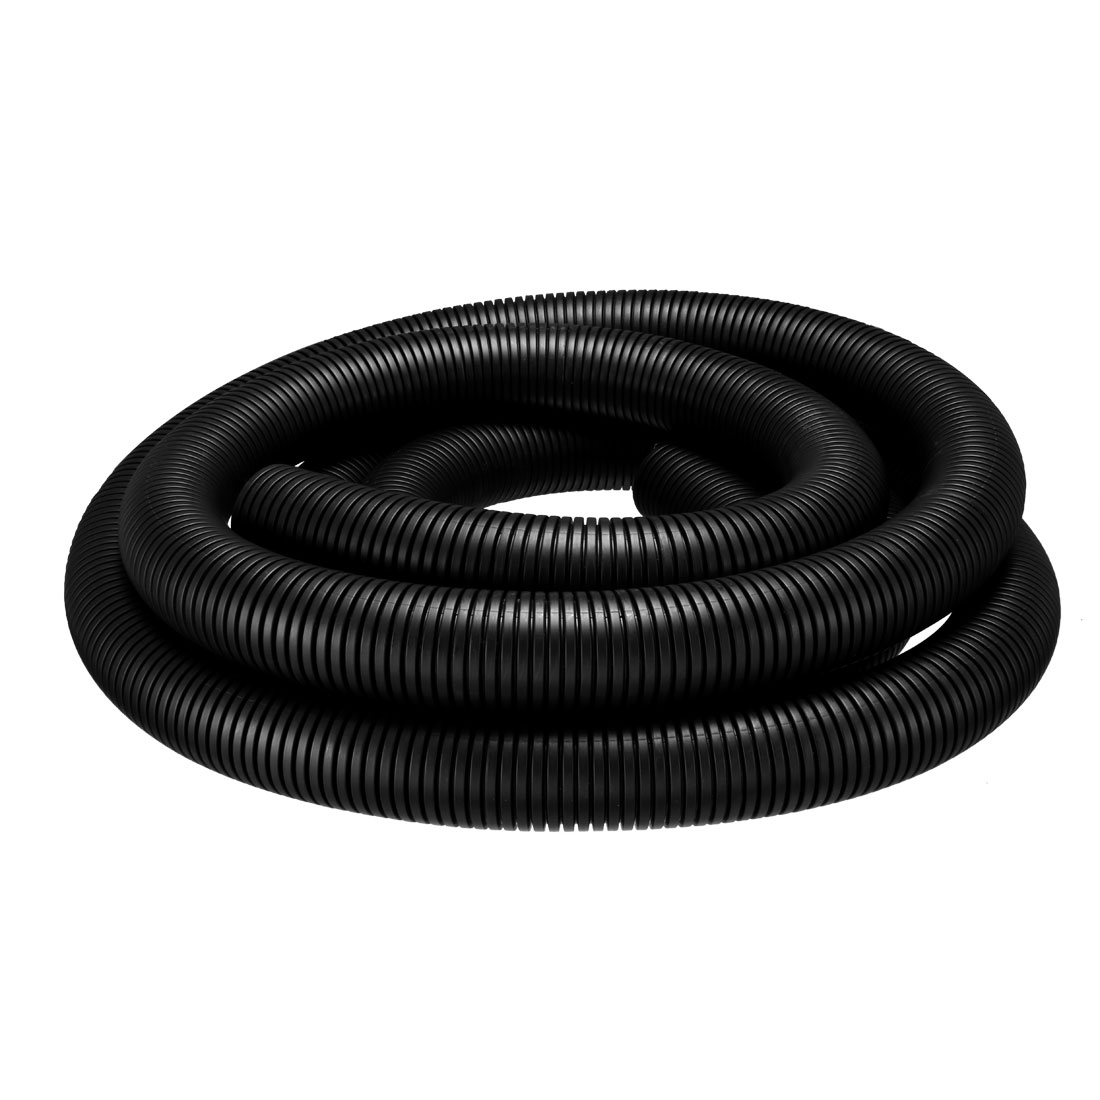 6M 42.5mm Outer Dia Corrugated Bellow Conduit Tube PP Polyethylene Tubing Black